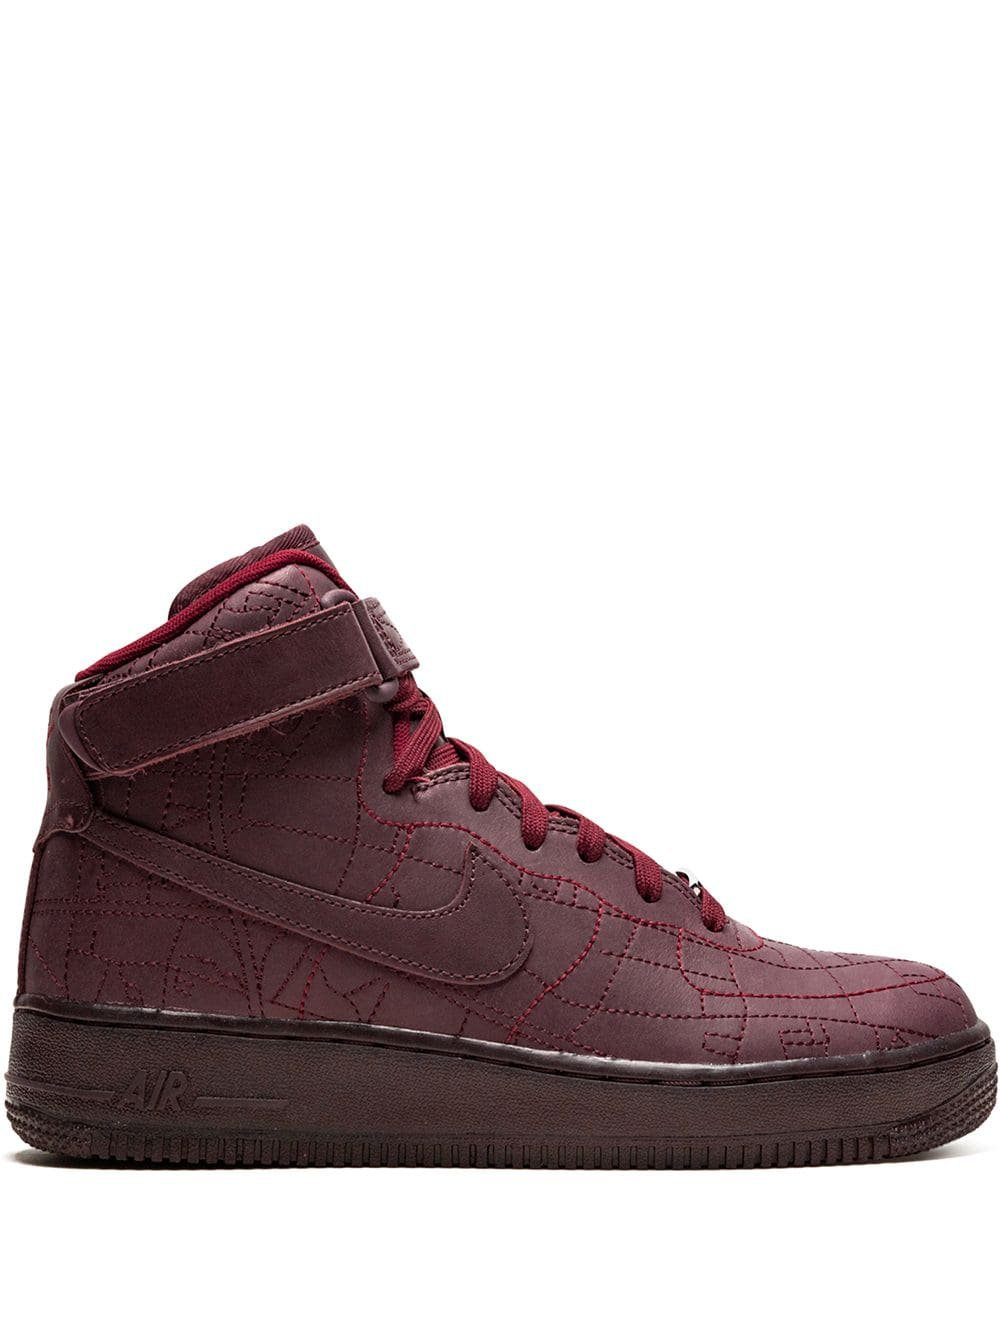 Nike Air Force 1 High Sneakers